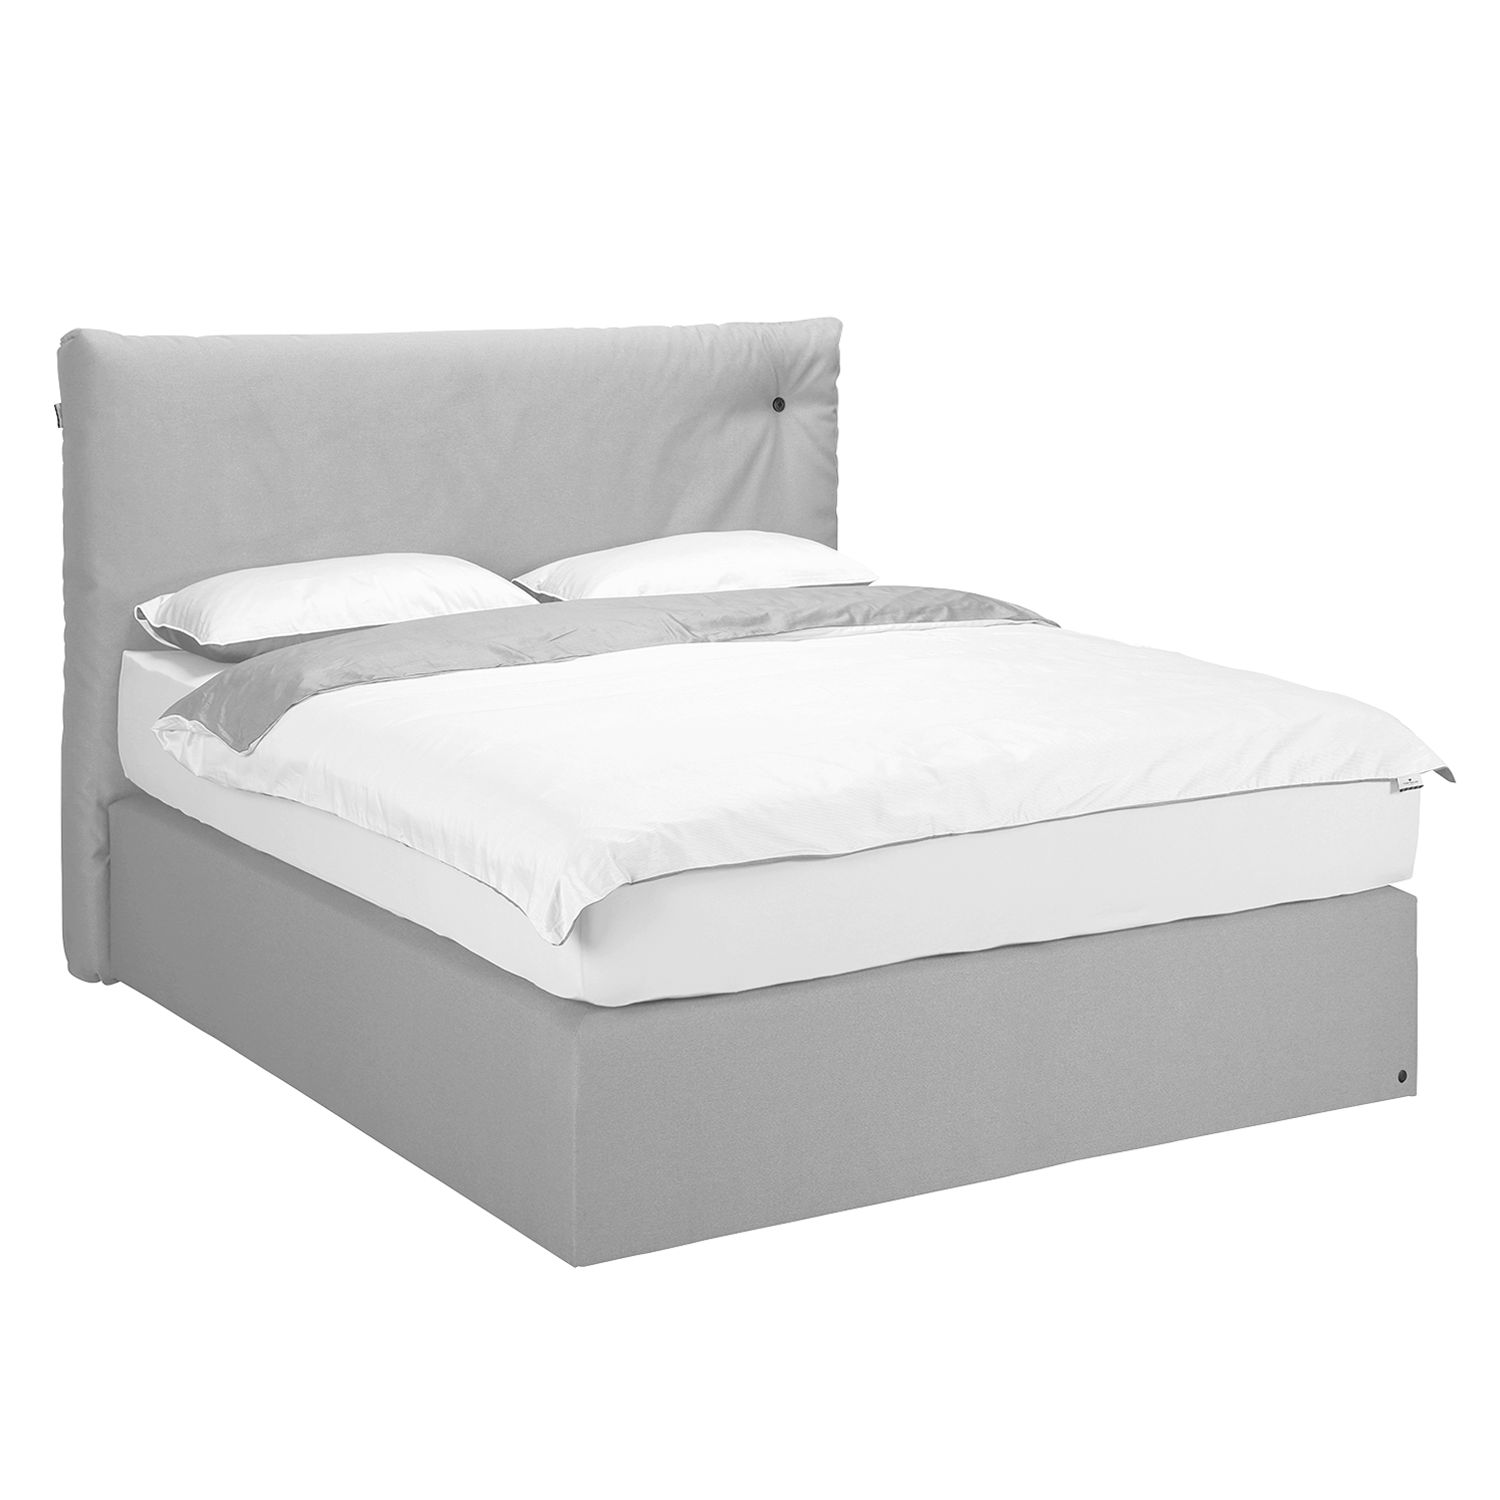 Boxspringbett Soft Cloud Webstoff - 140 x 200cm - H3 ab 80 kg - Stoff TUS19 light grey, Tom Tailor